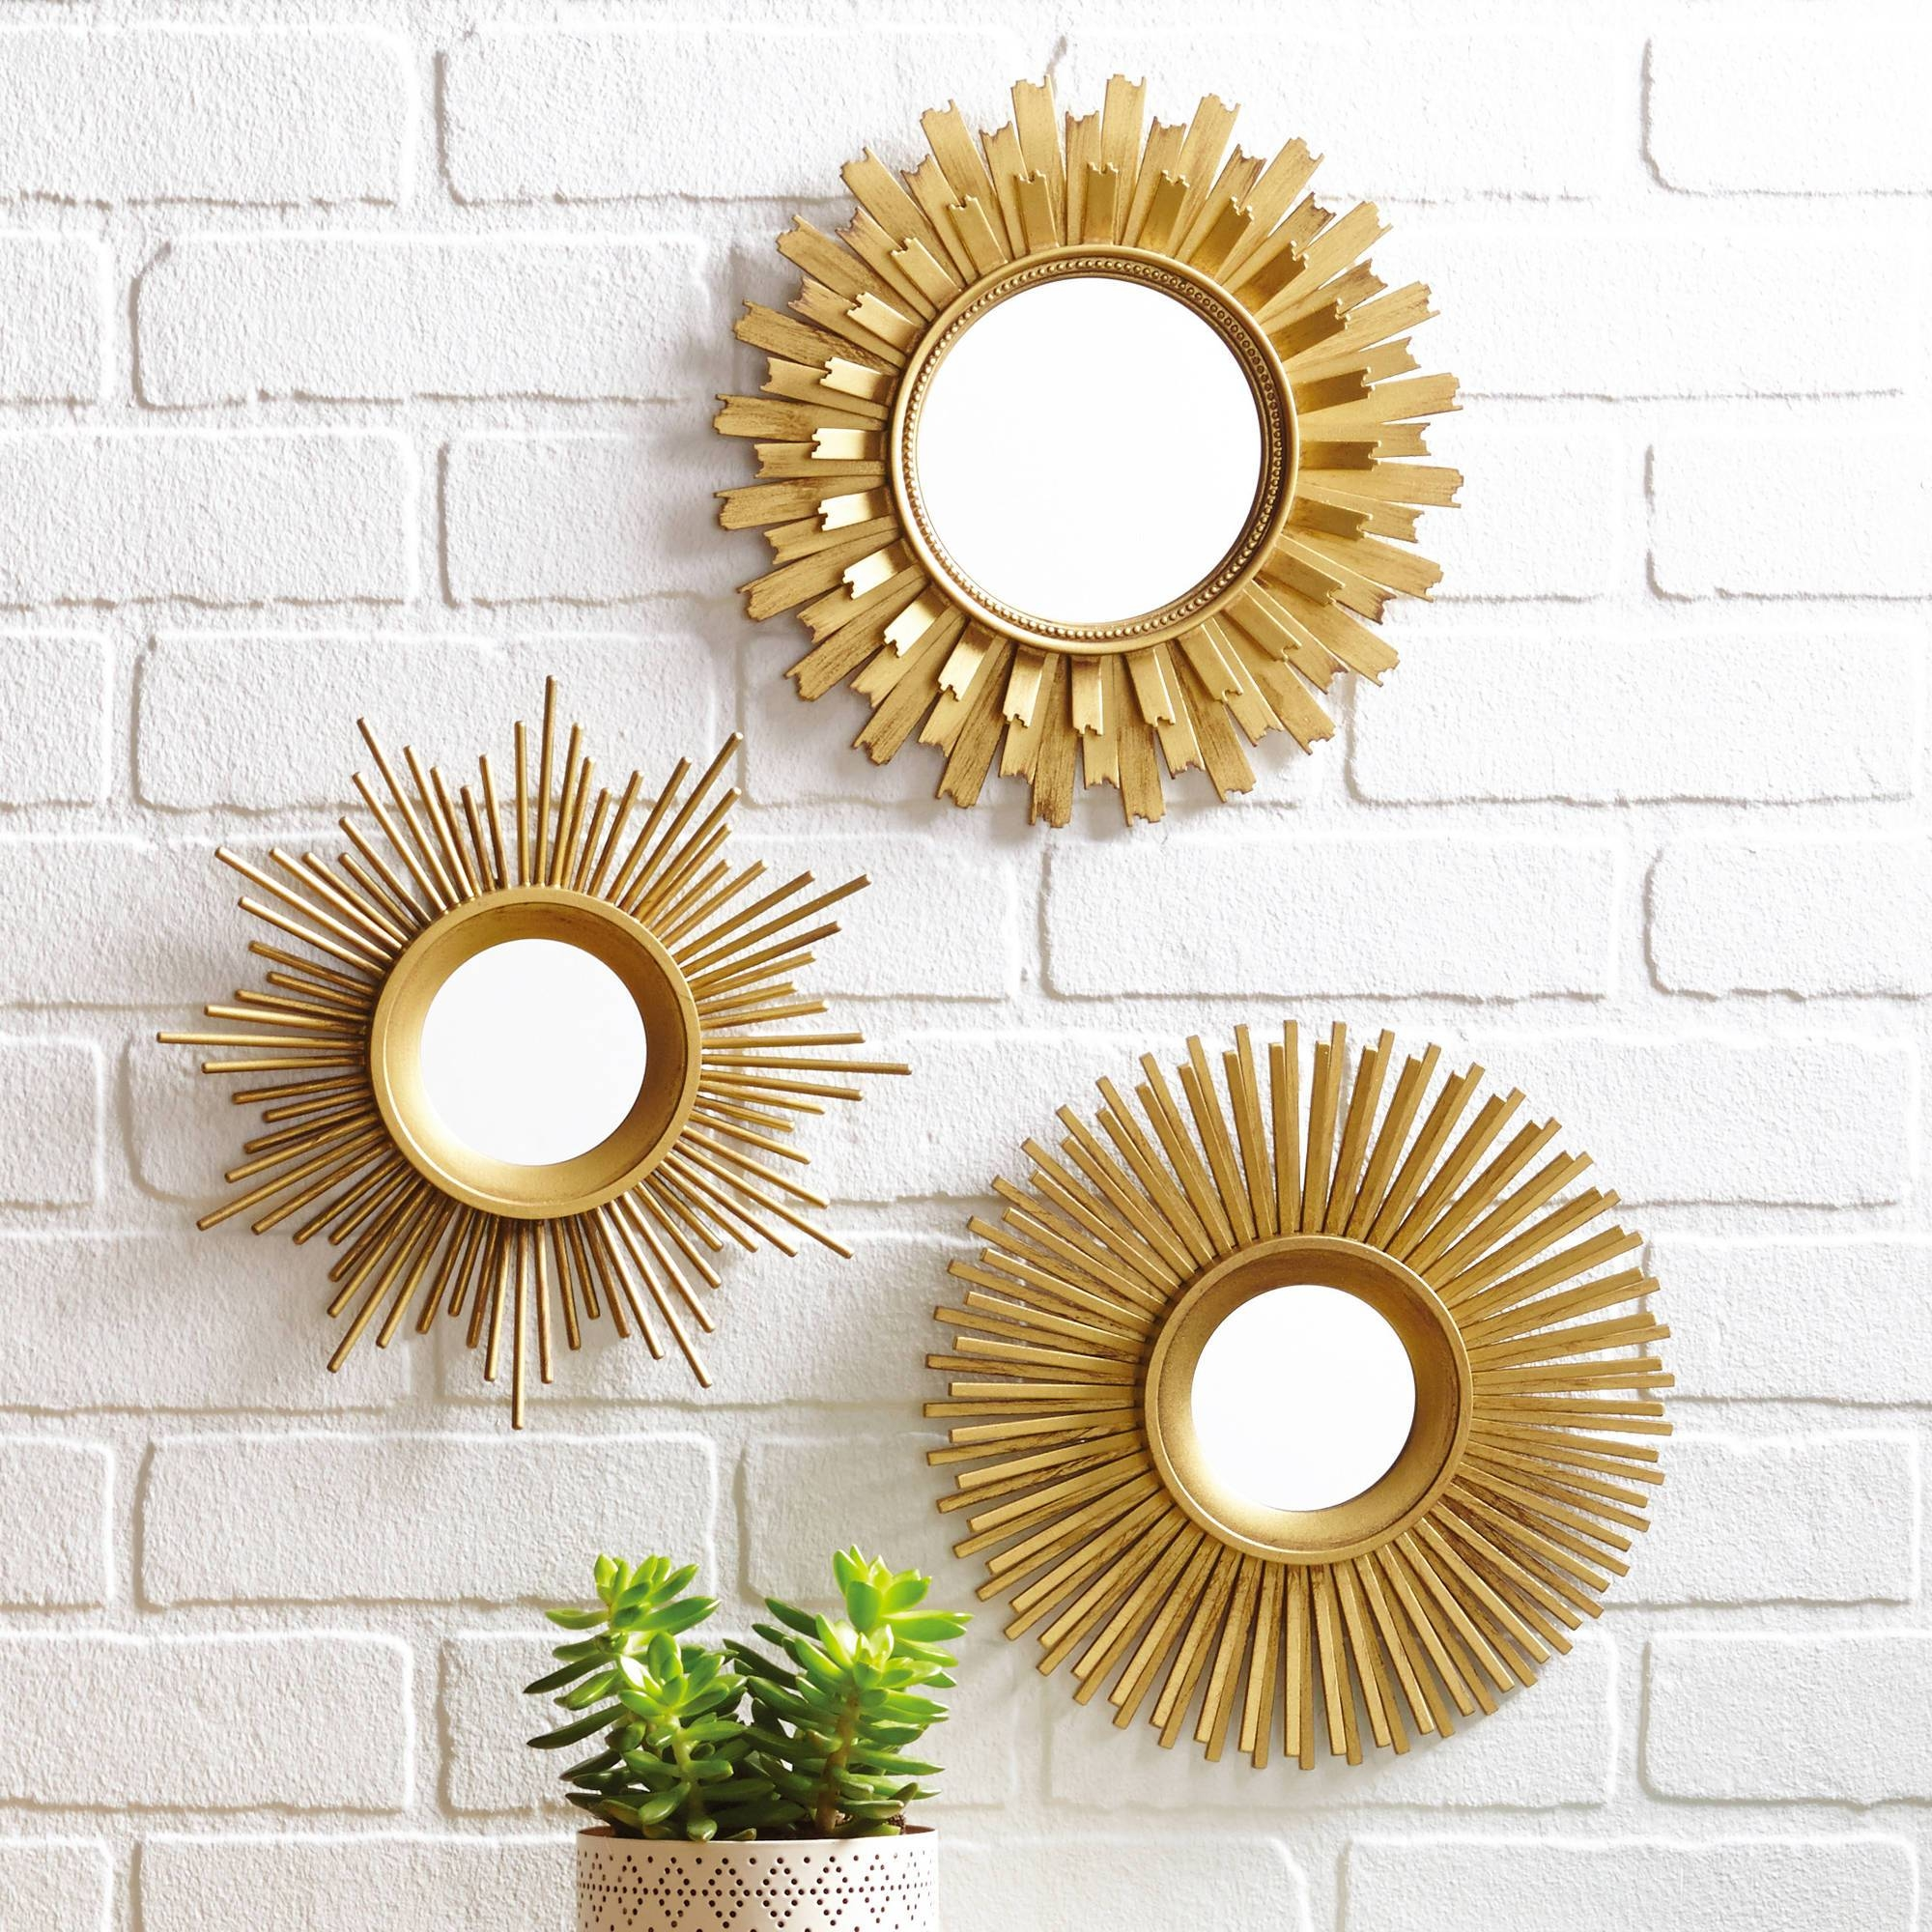 Set Of 3 Wall Mirrors | Mirror Collection Items In 2018 Small Round Mirrors Wall Art (View 7 of 20)